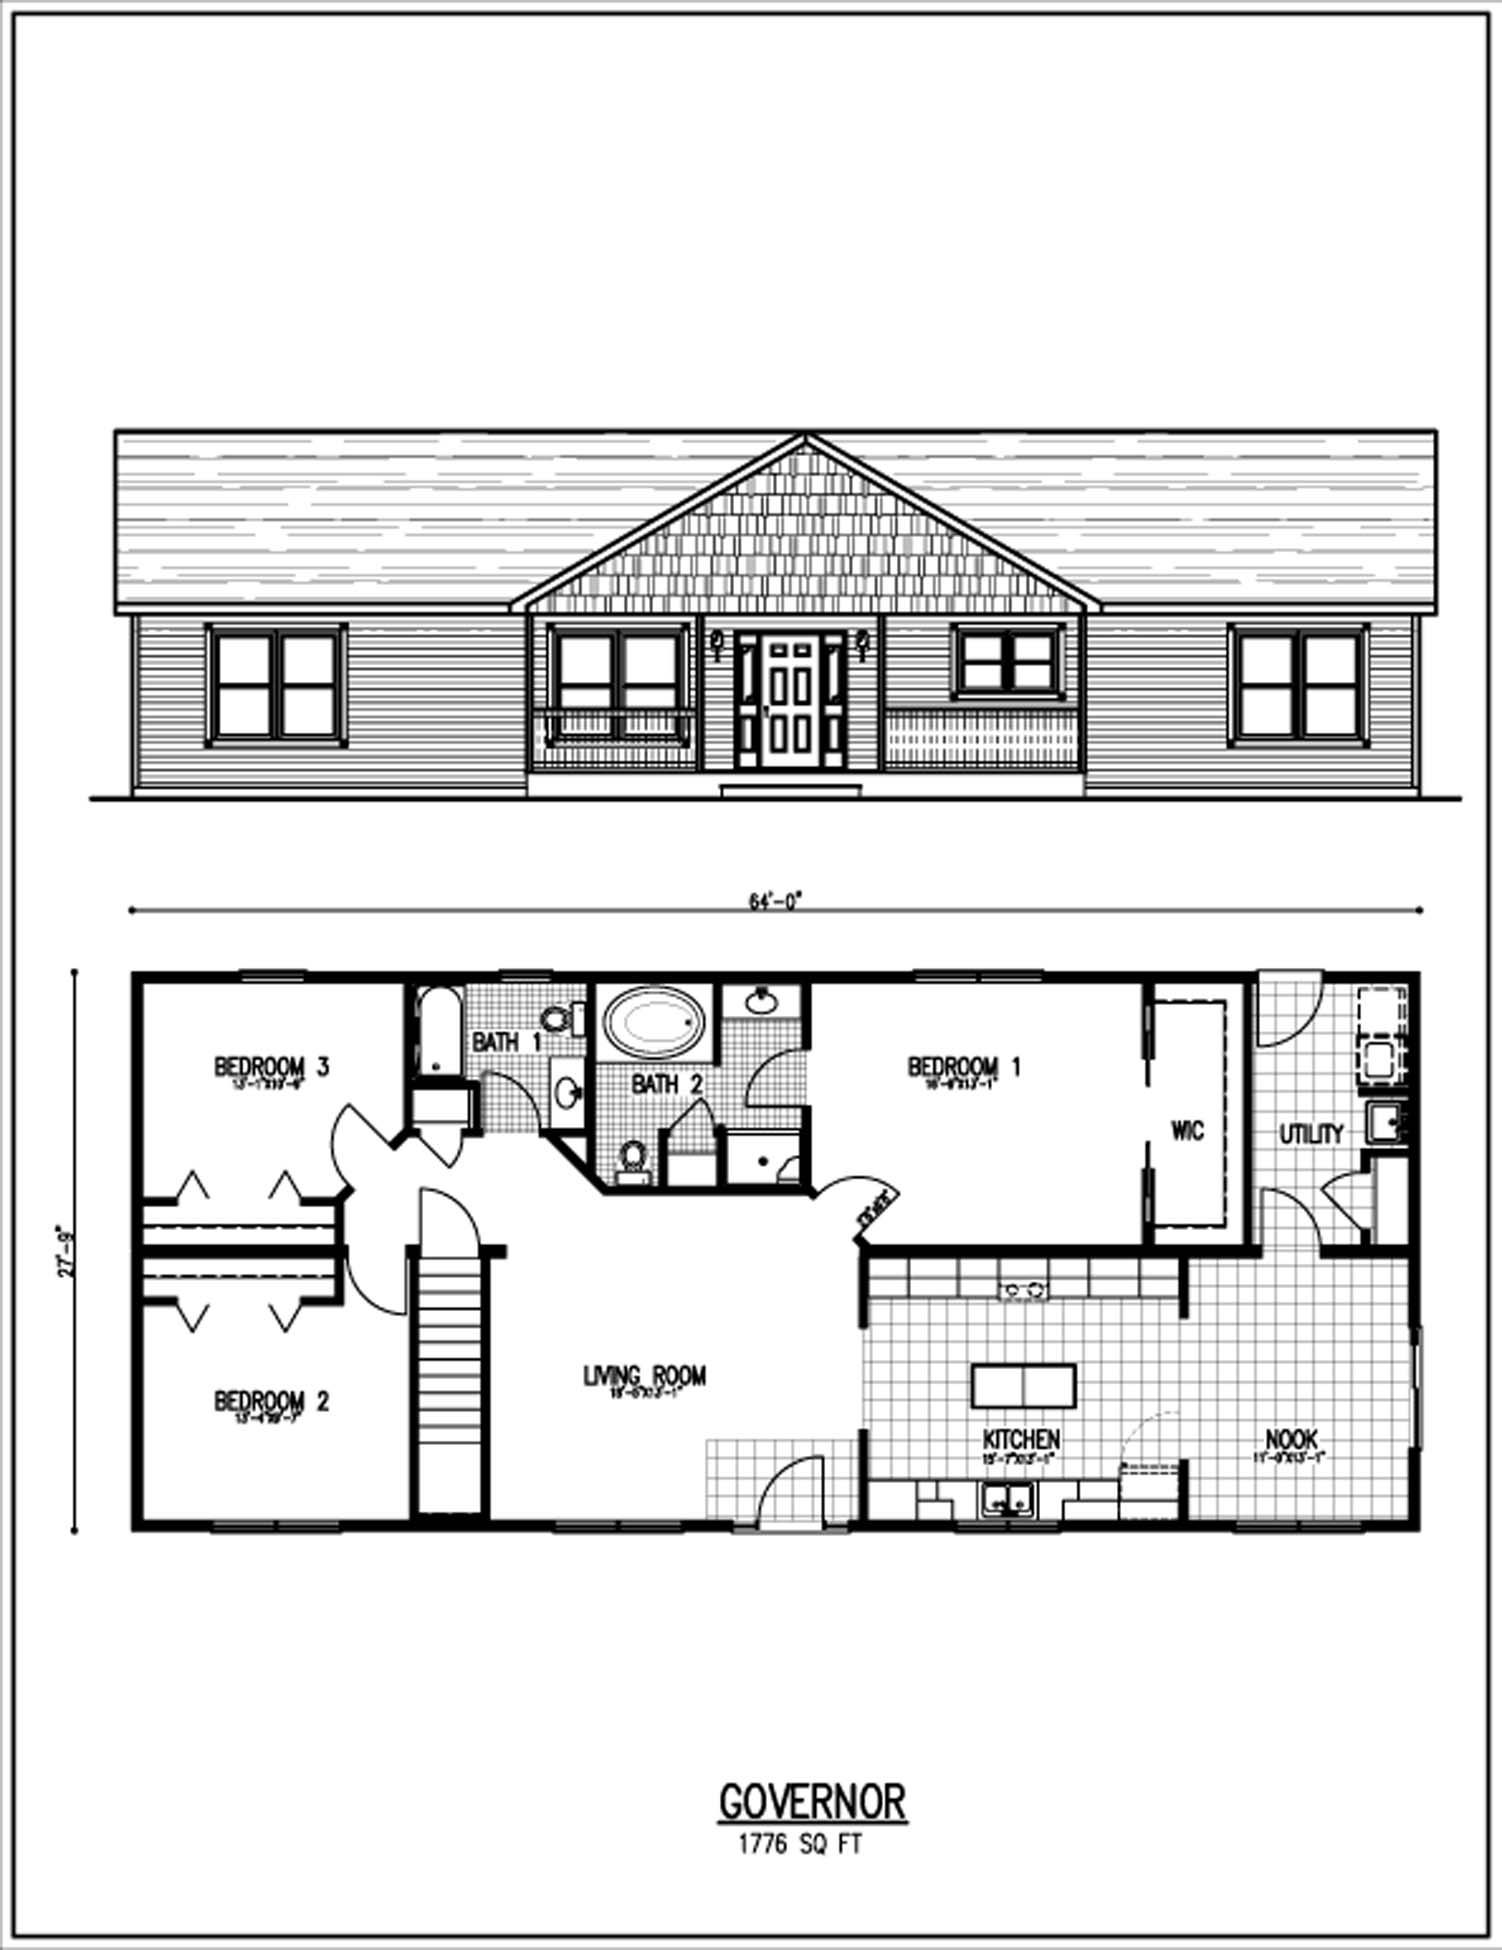 Floor plans by shawam082498 on pinterest floor plans for Building plans for ranch style homes